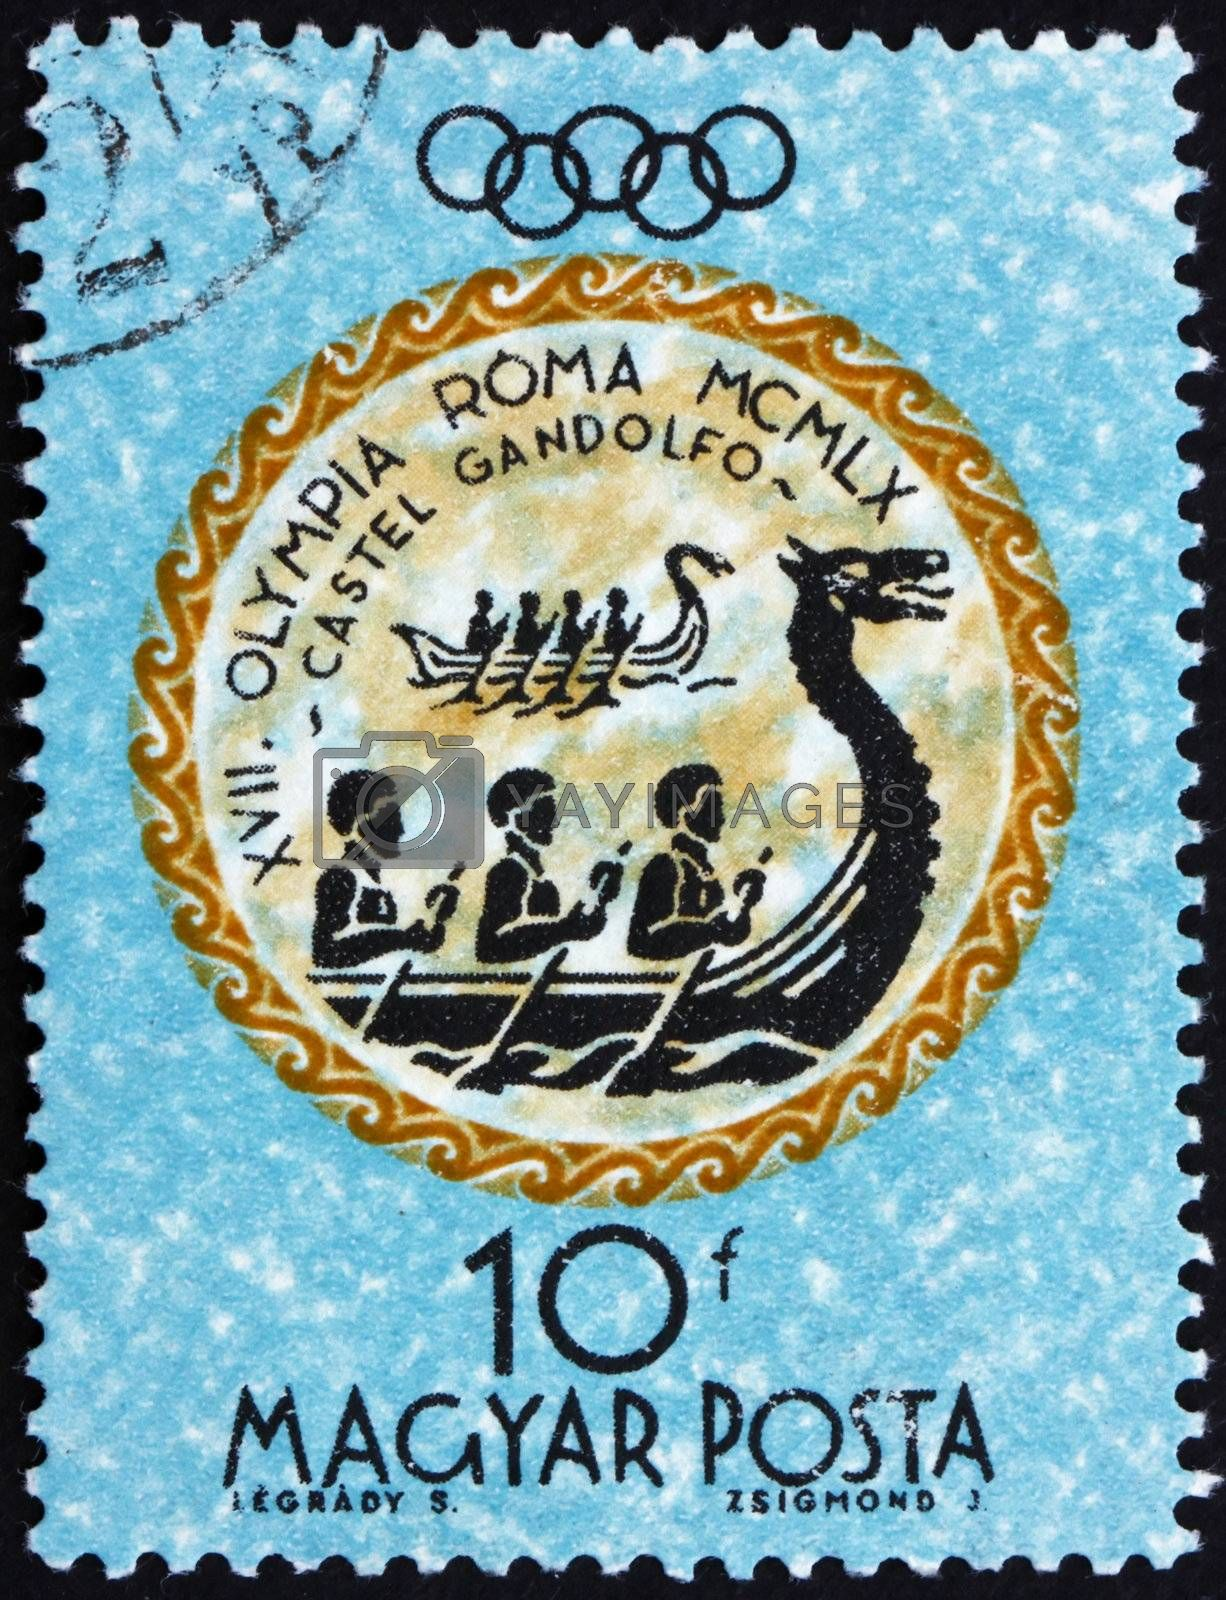 HUNGARY - CIRCA 1960: a stamp printed in the Hungary shows Rowers, Summer Olympic sports, Rome 60, circa 1960